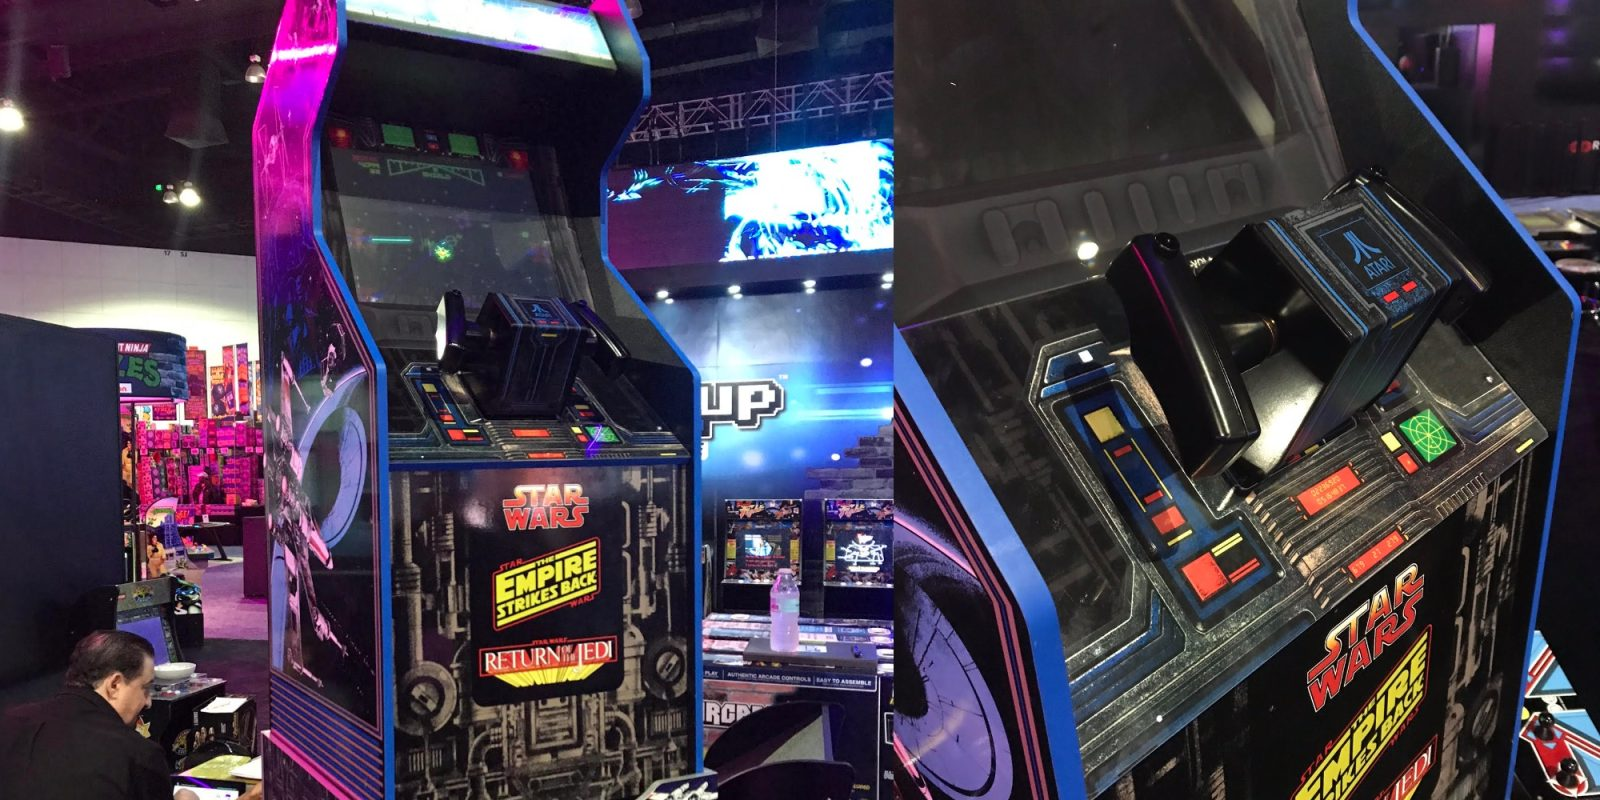 Arcade1Up Star Wars 3/4th-scale Arcade Cabinets debut at E3